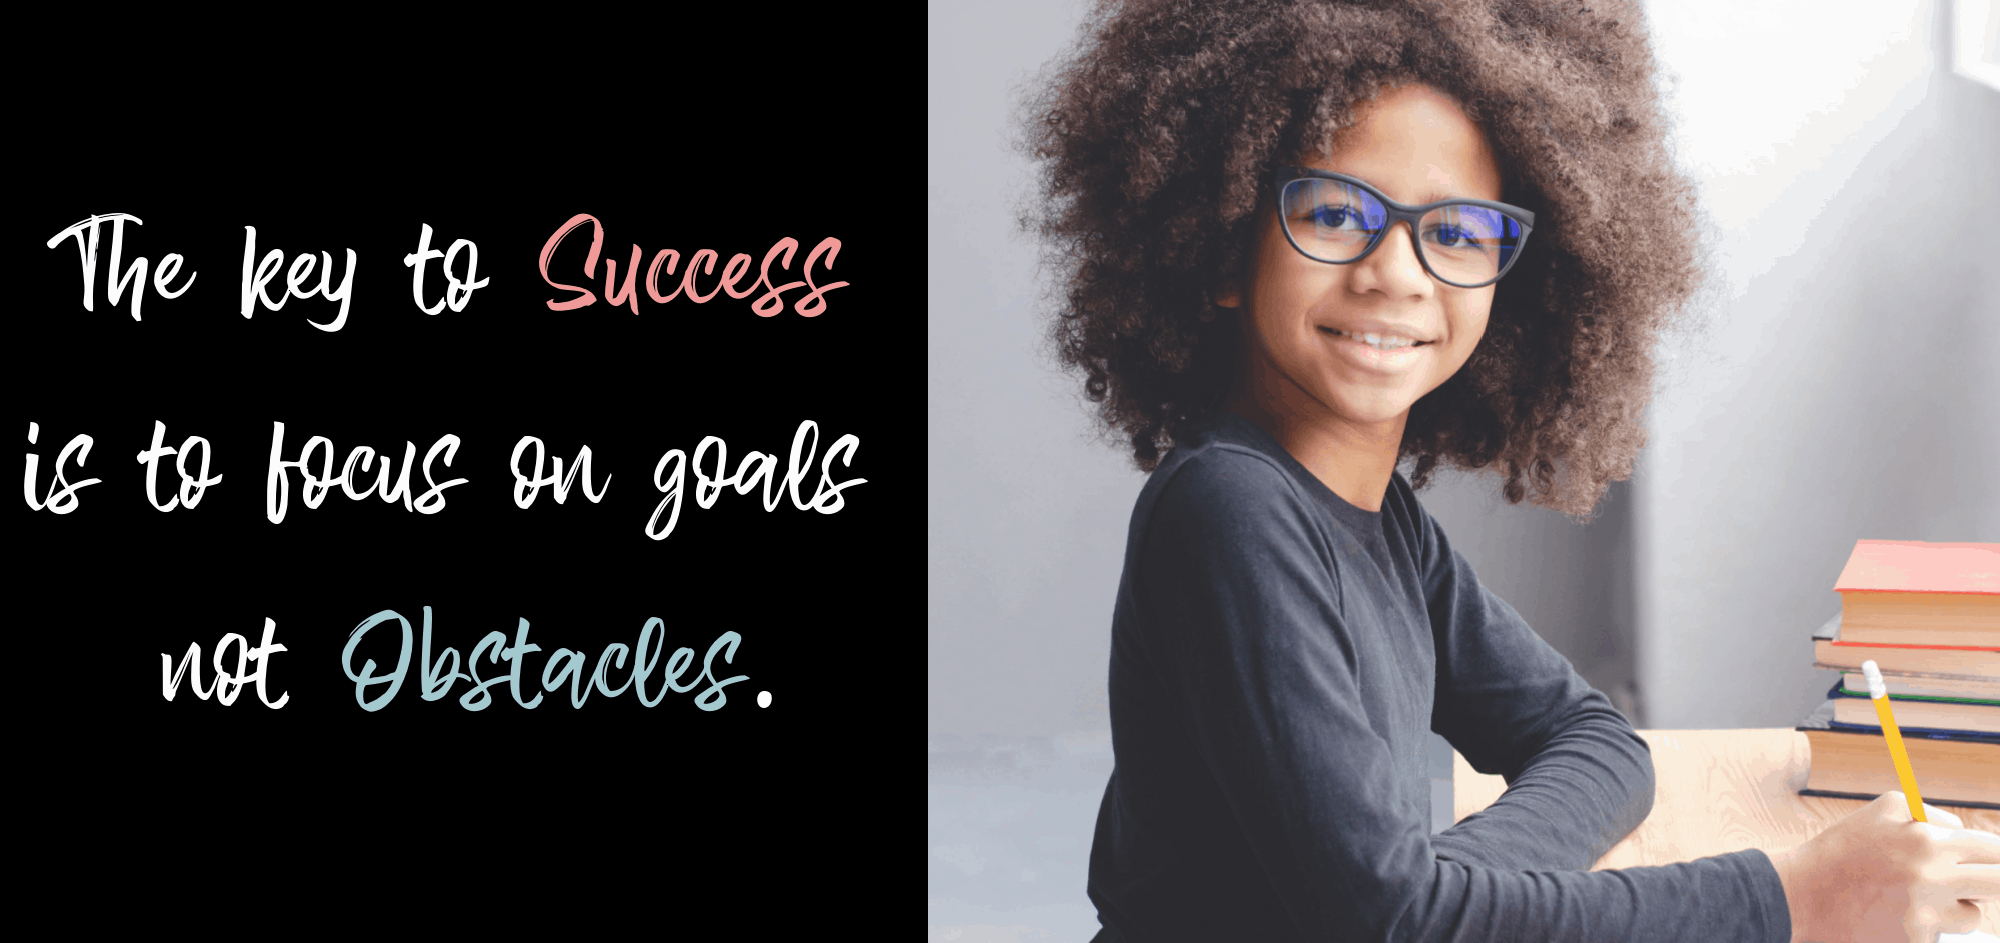 Quote- The key to success is to focus on goals not obstacles. {Photo- little girl goal planning in a notebook}